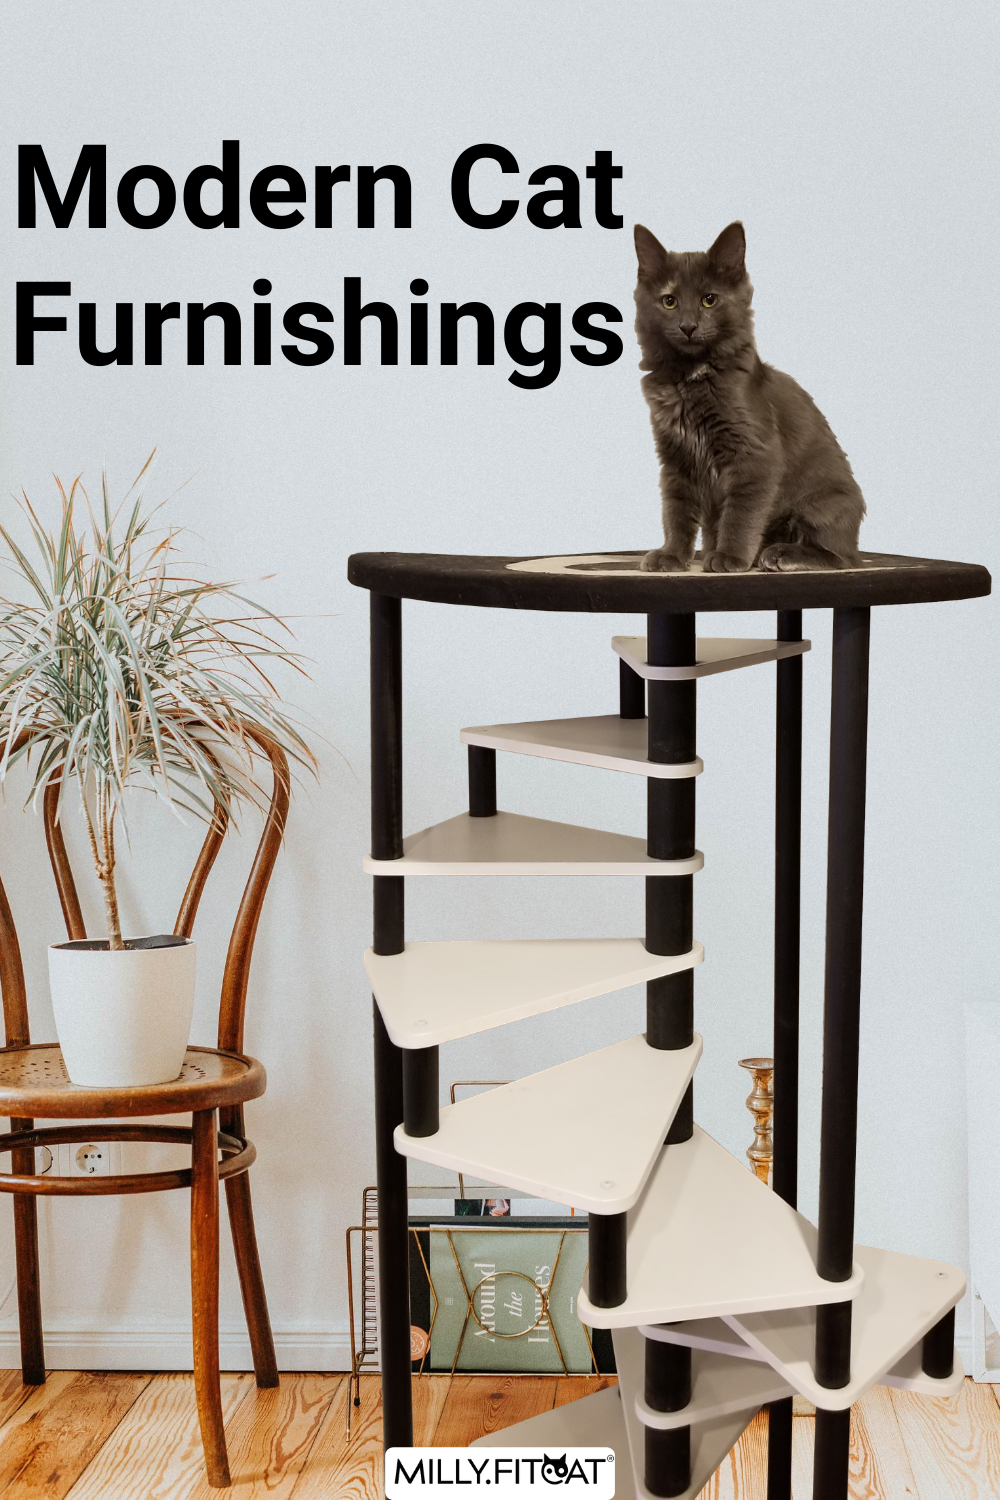 Cat Tree 12 Step Spiral Cat Furniture Best Cat Stairs 2021 Cat Ladder With Pet Bed On Top Modern Cat Tree Cat Furniture Modern Cat Furniture